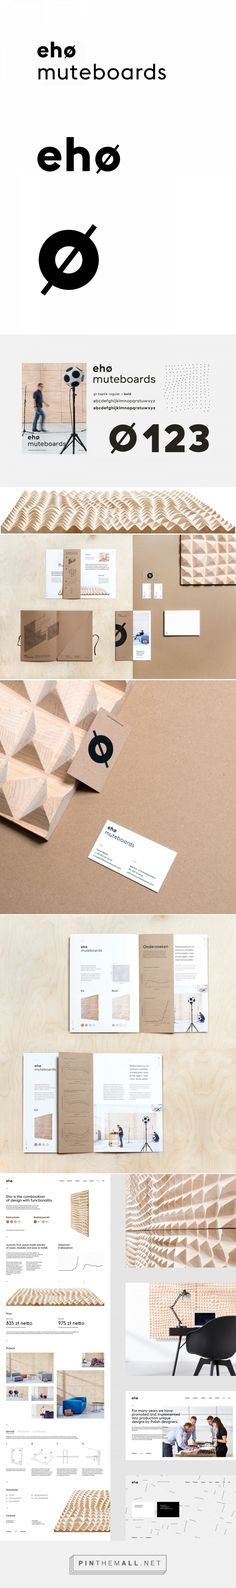 ehø muteboards on Behance... - a grouped images picture - Pin Them All